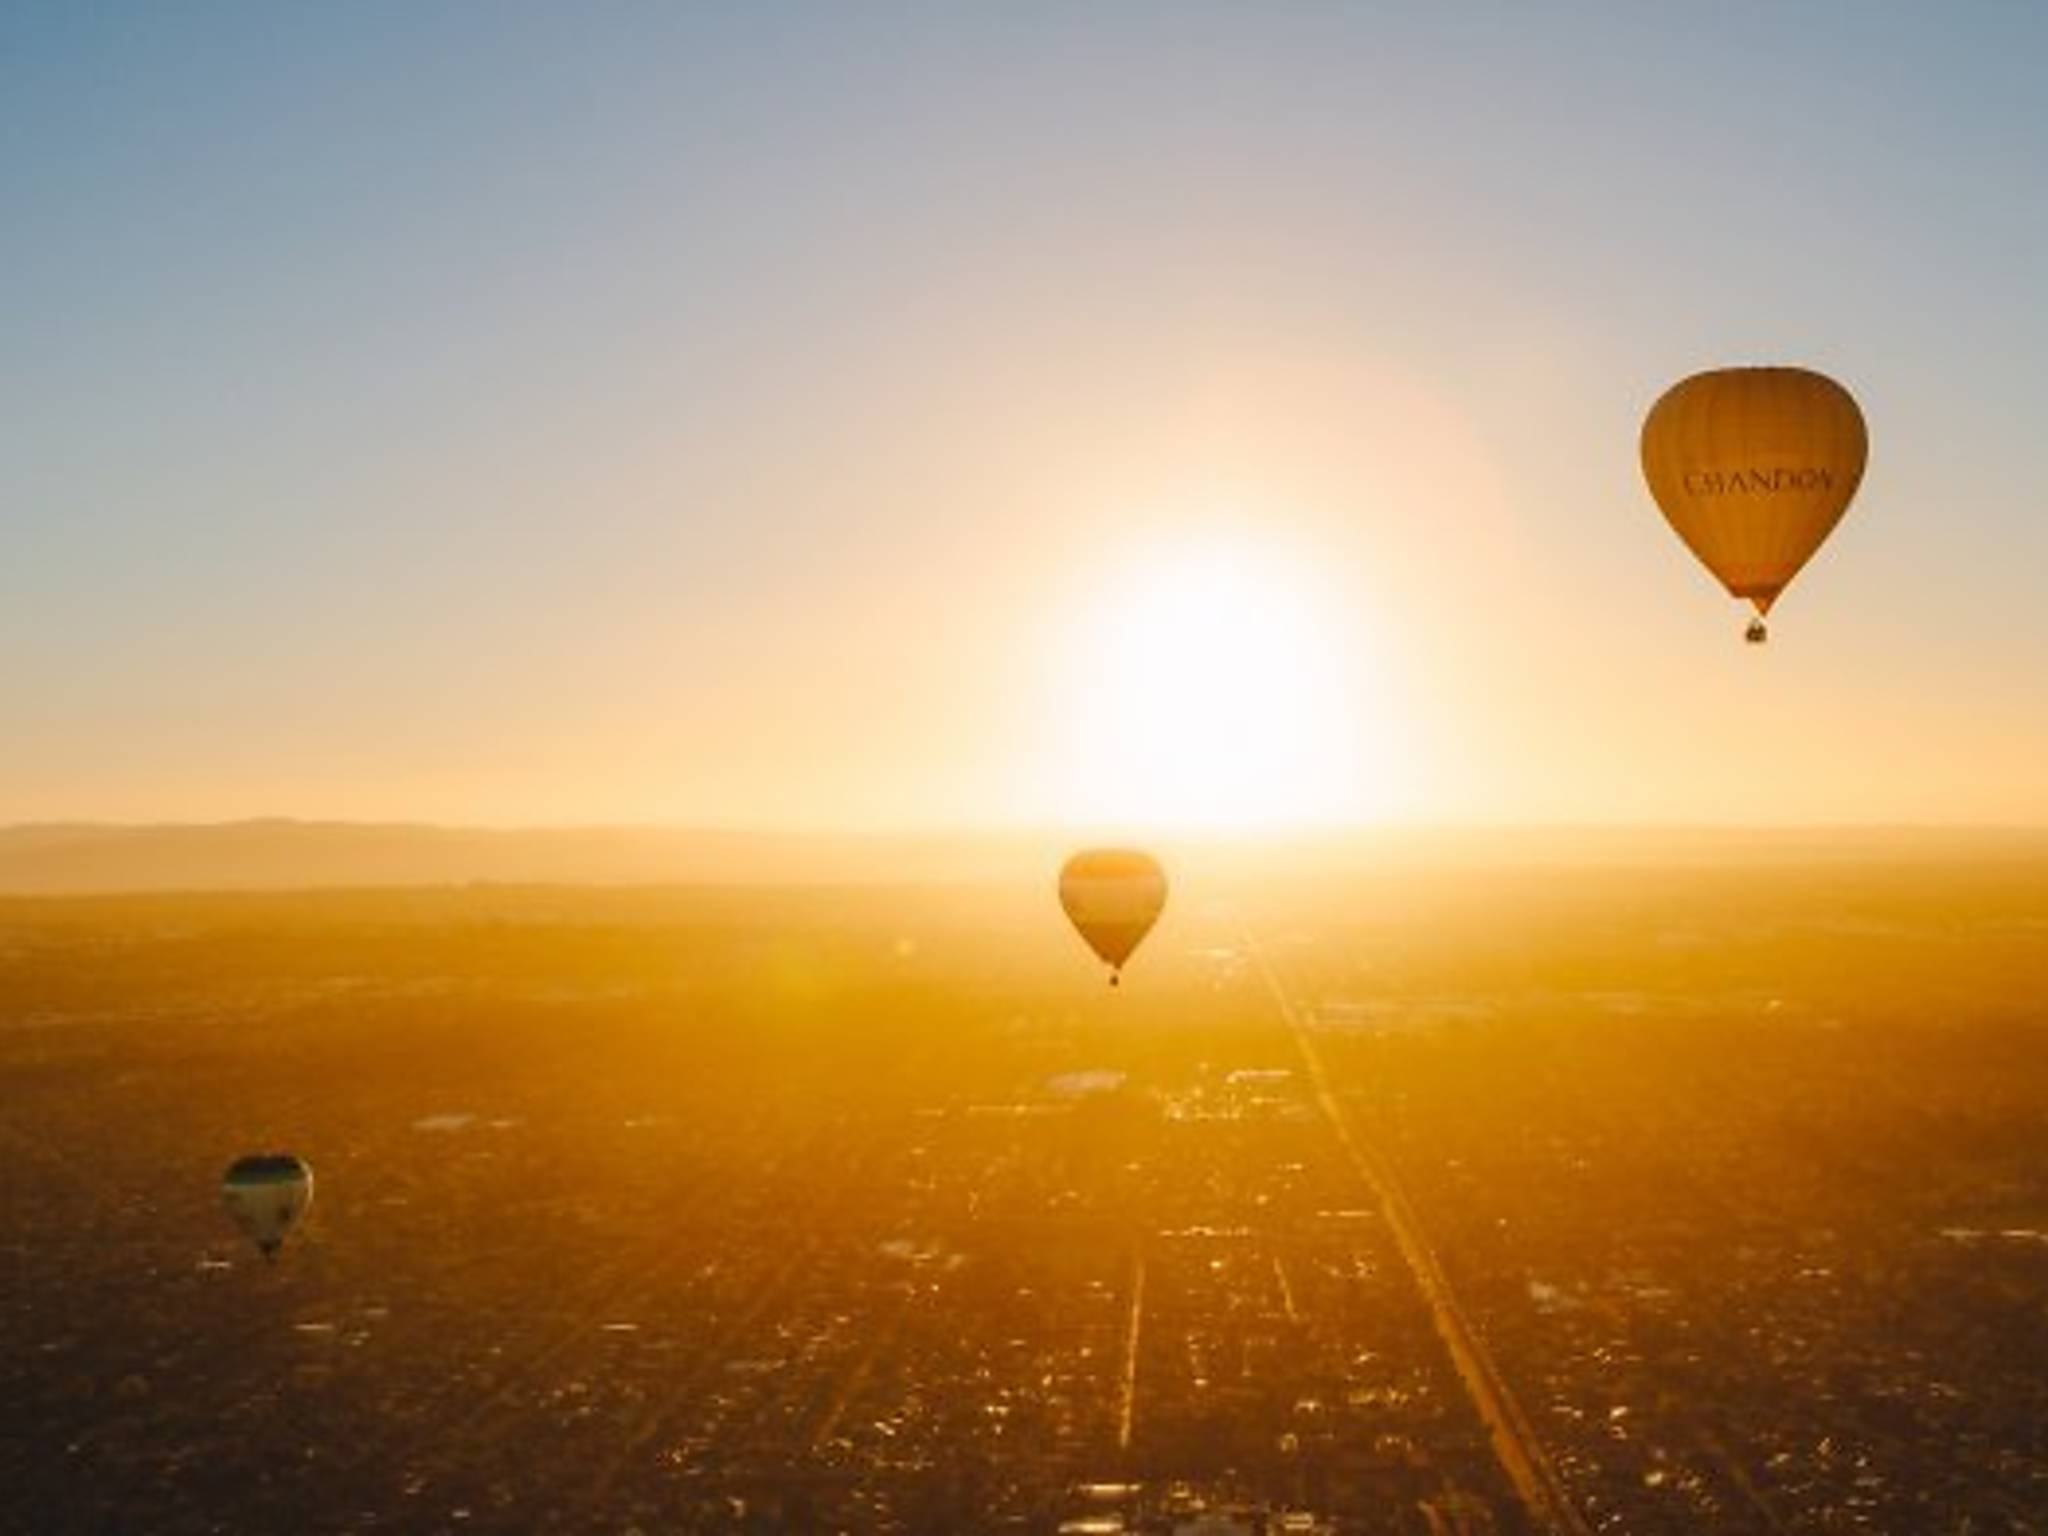 Soar above the city in a hot air balloon